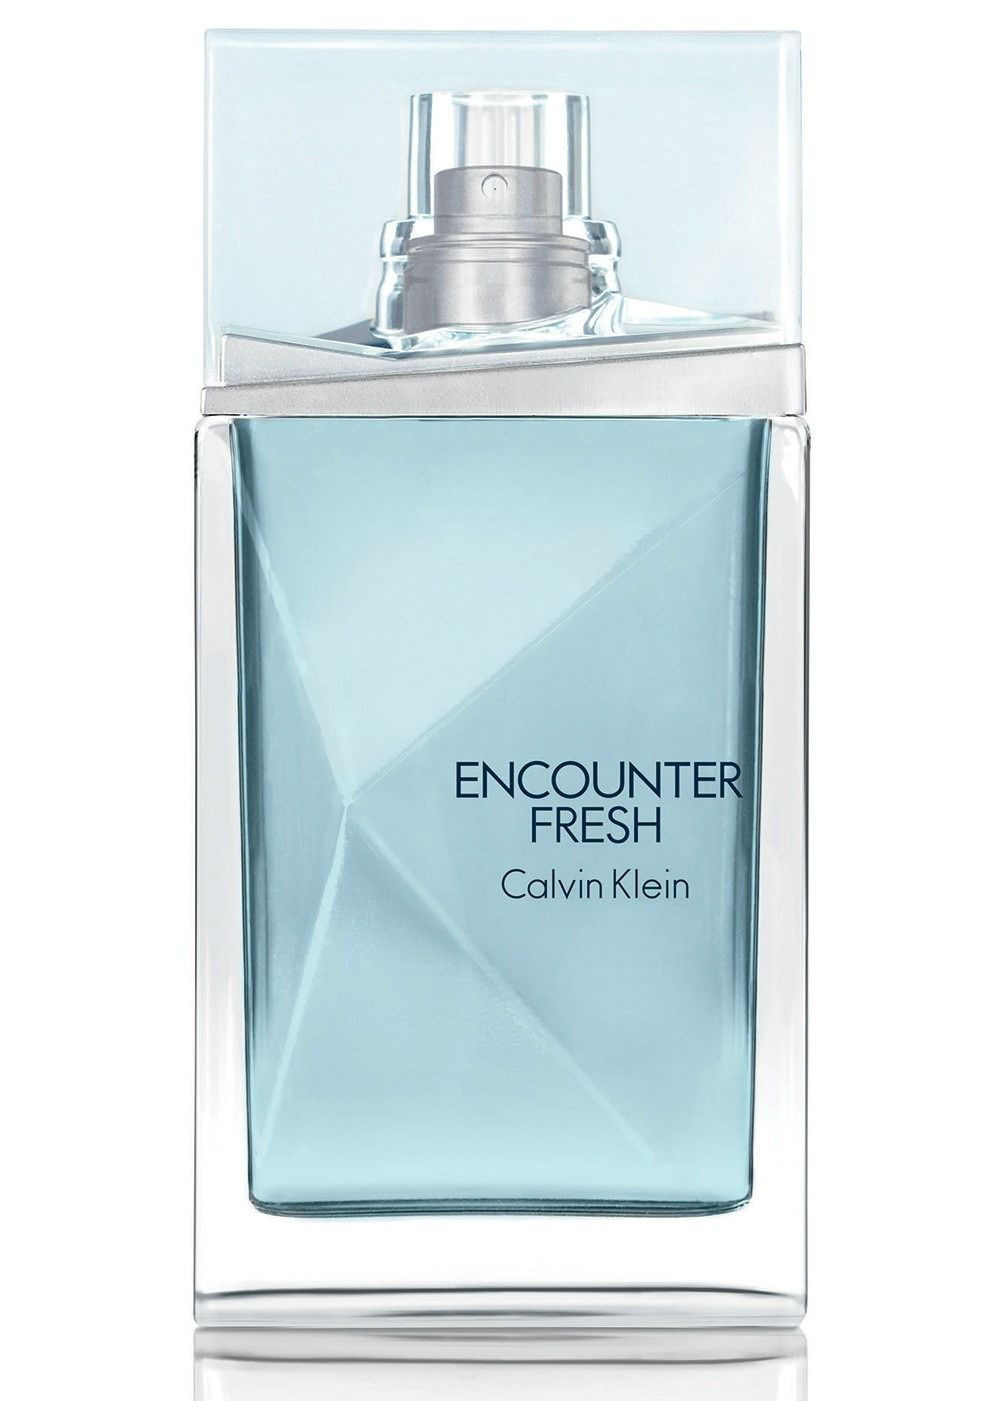 Encounter Fresh Edt 30ml - Calvin Klein